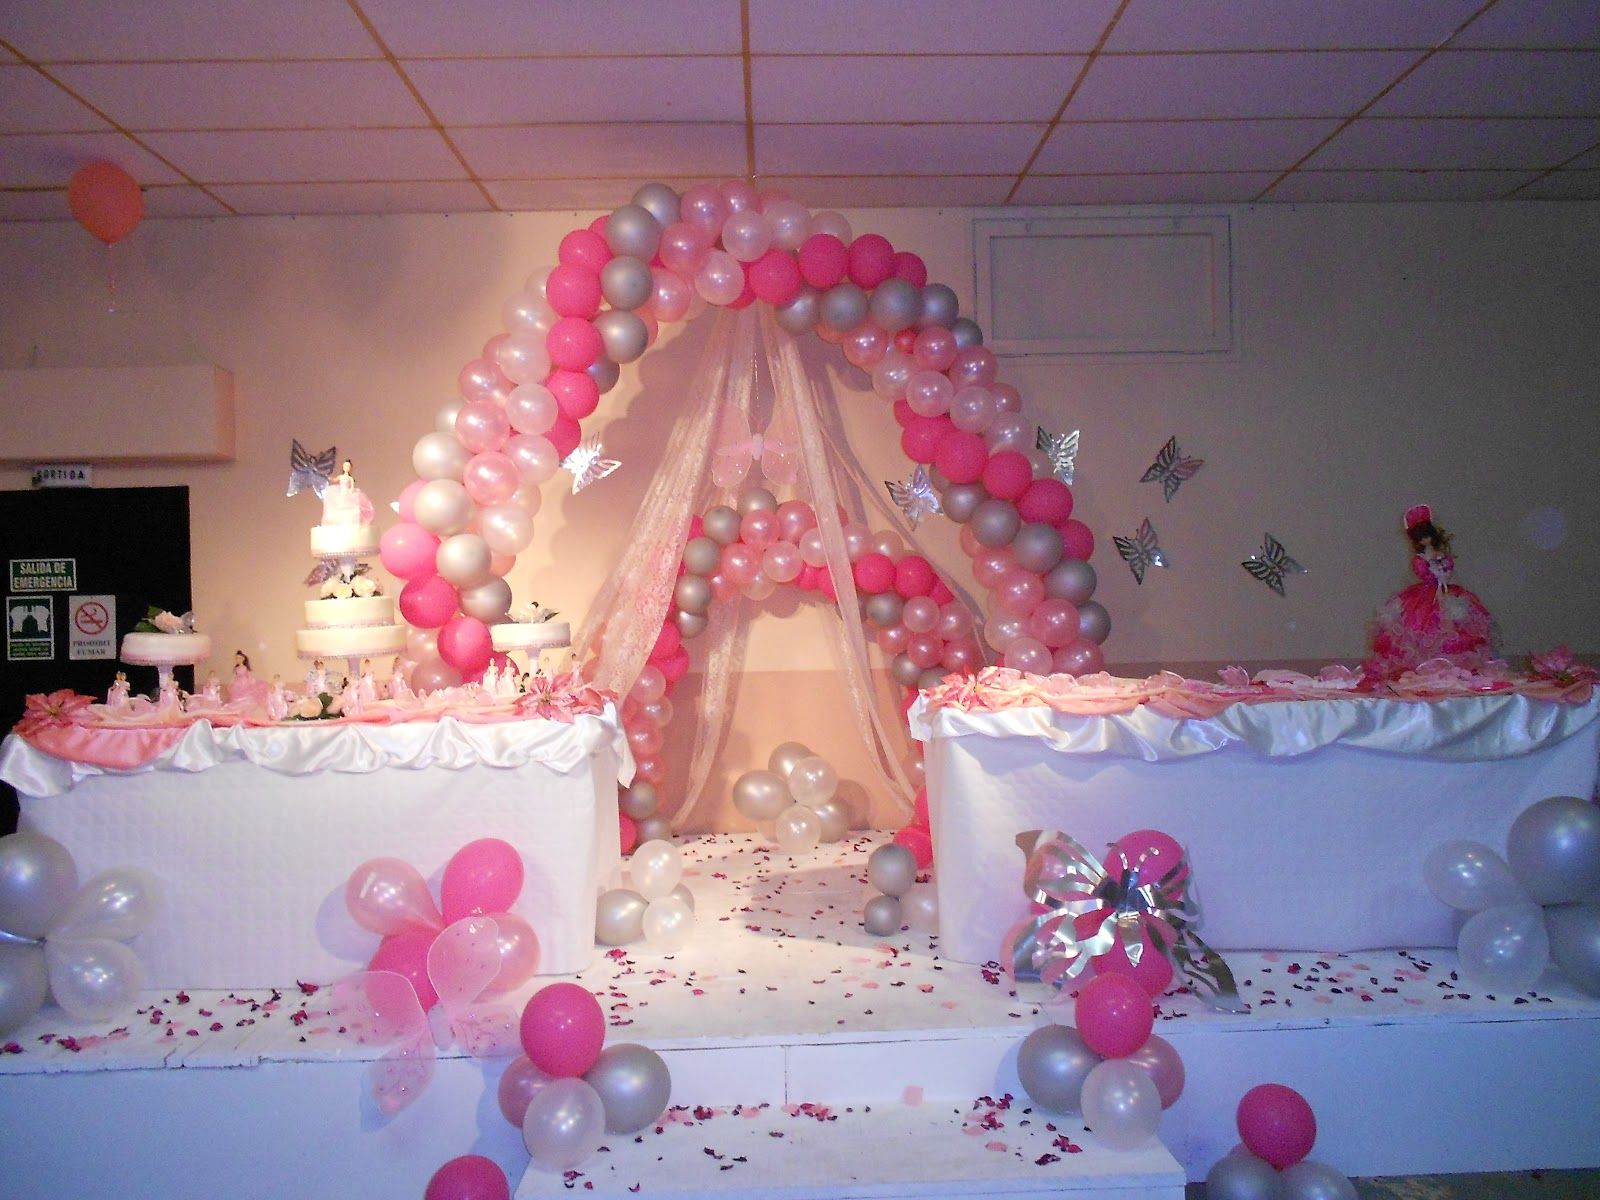 Decoracion para una quinceanera la decoracion con globos for Adornos para quinceanera